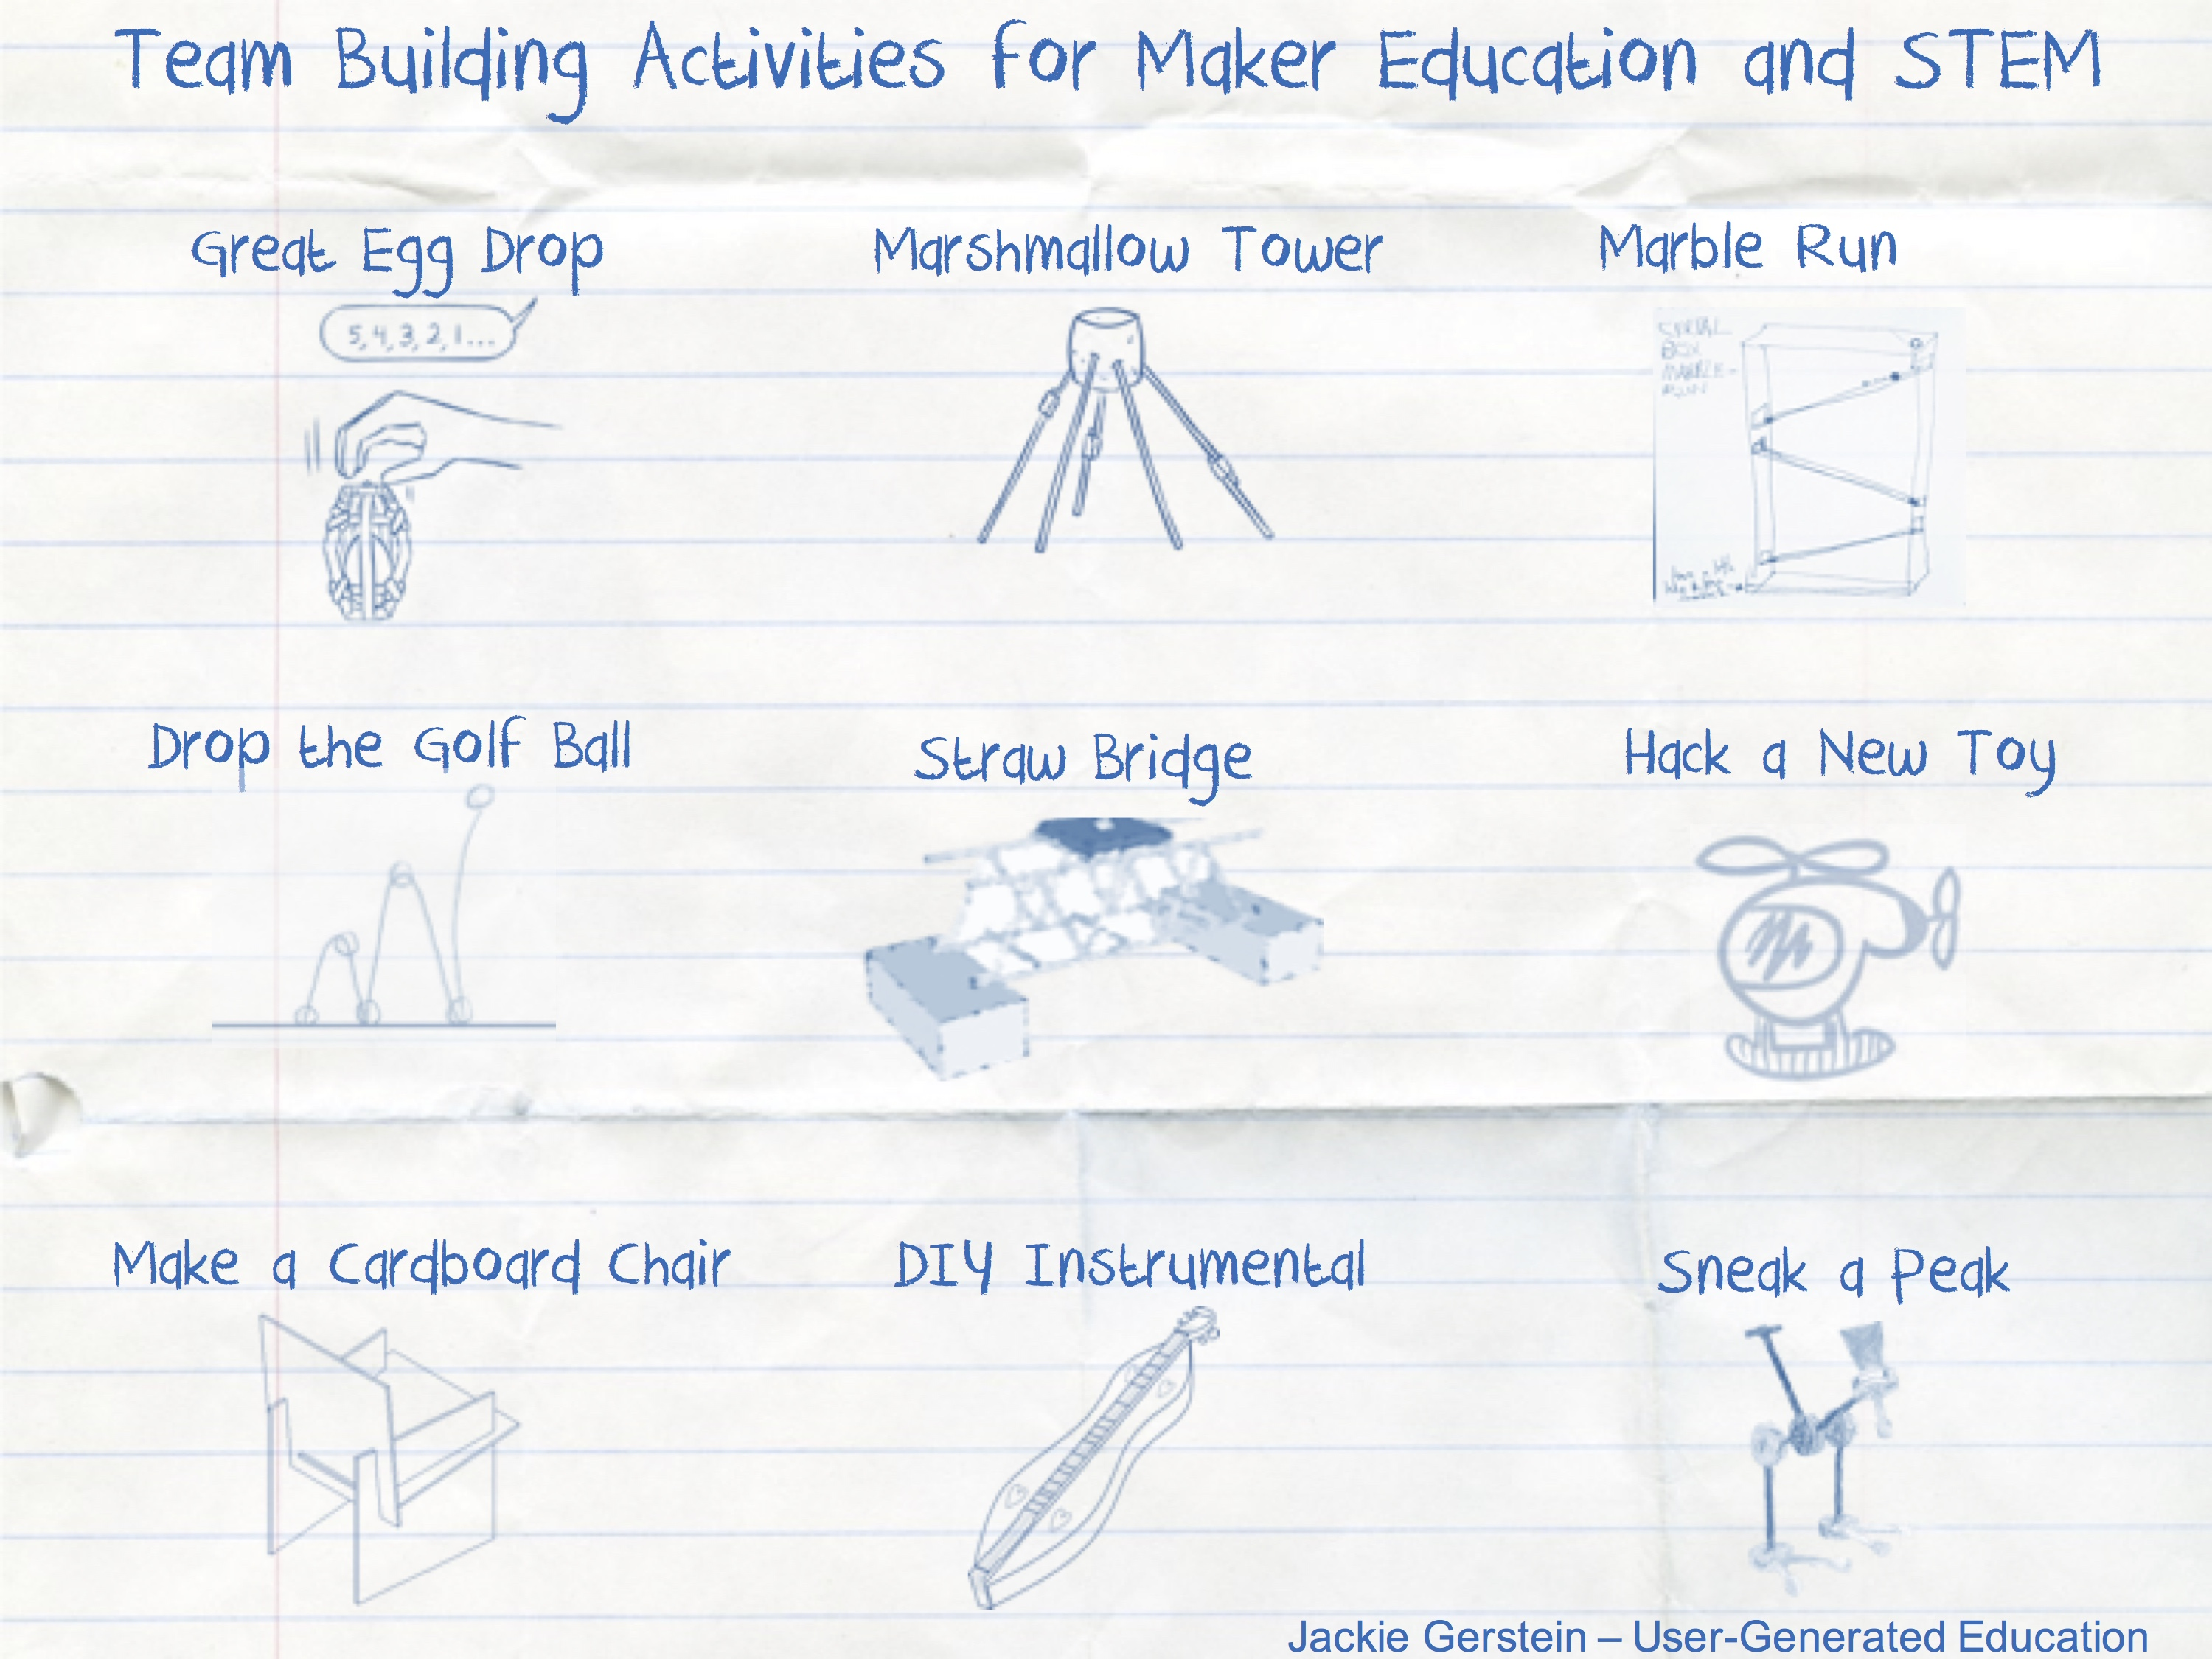 Team Building Activities That Support Maker Education, STEM, and STEAM